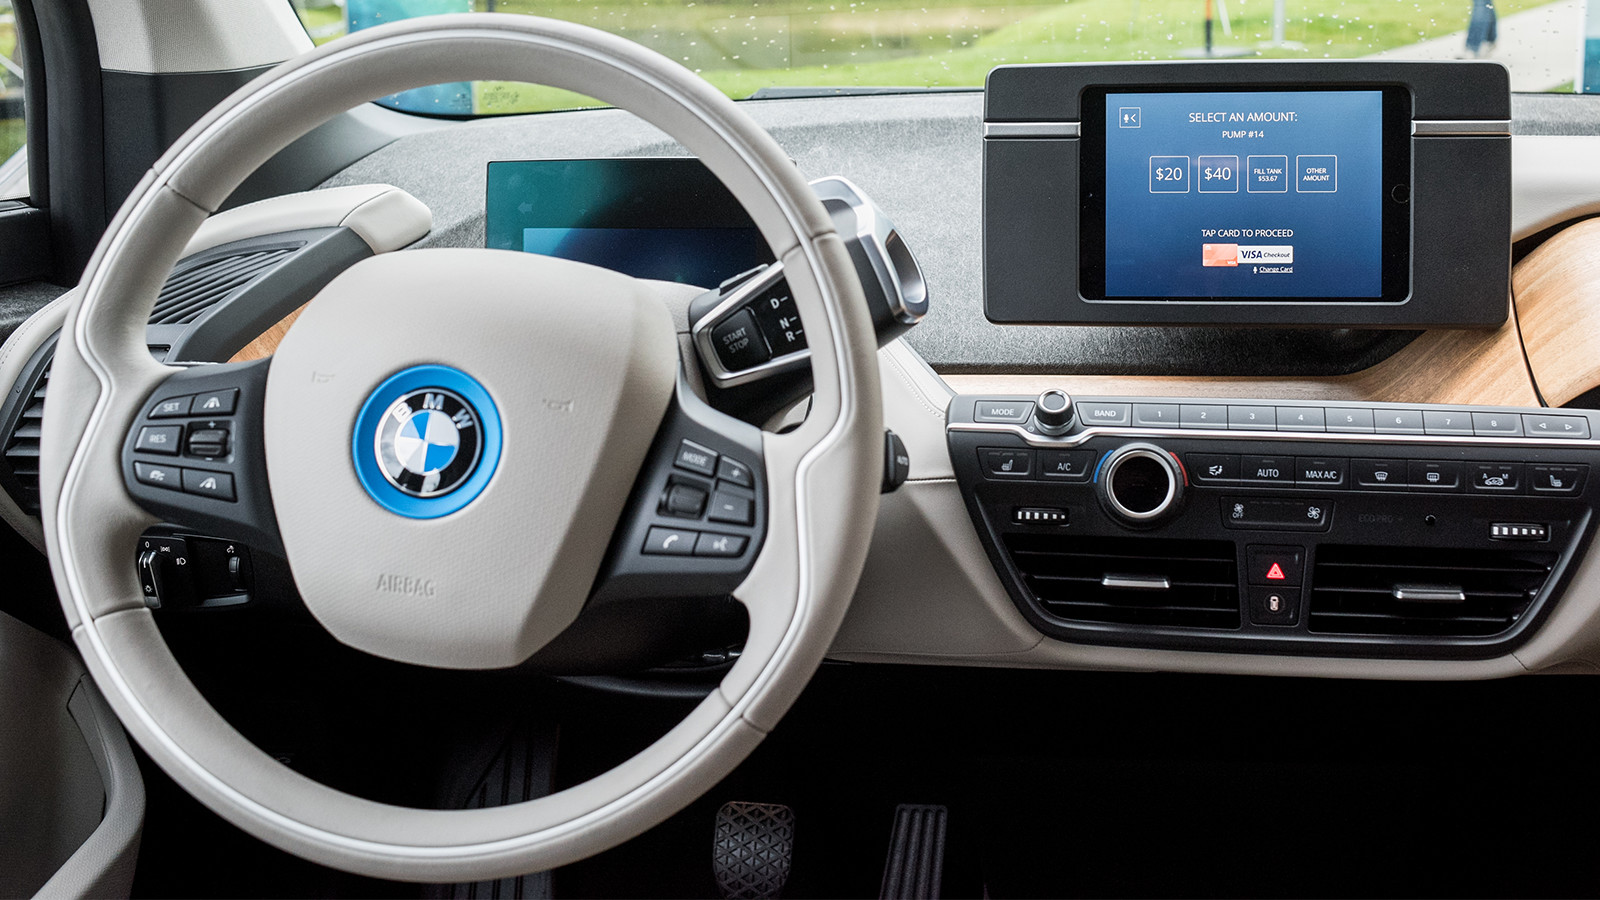 Interior of car with a payment terminal